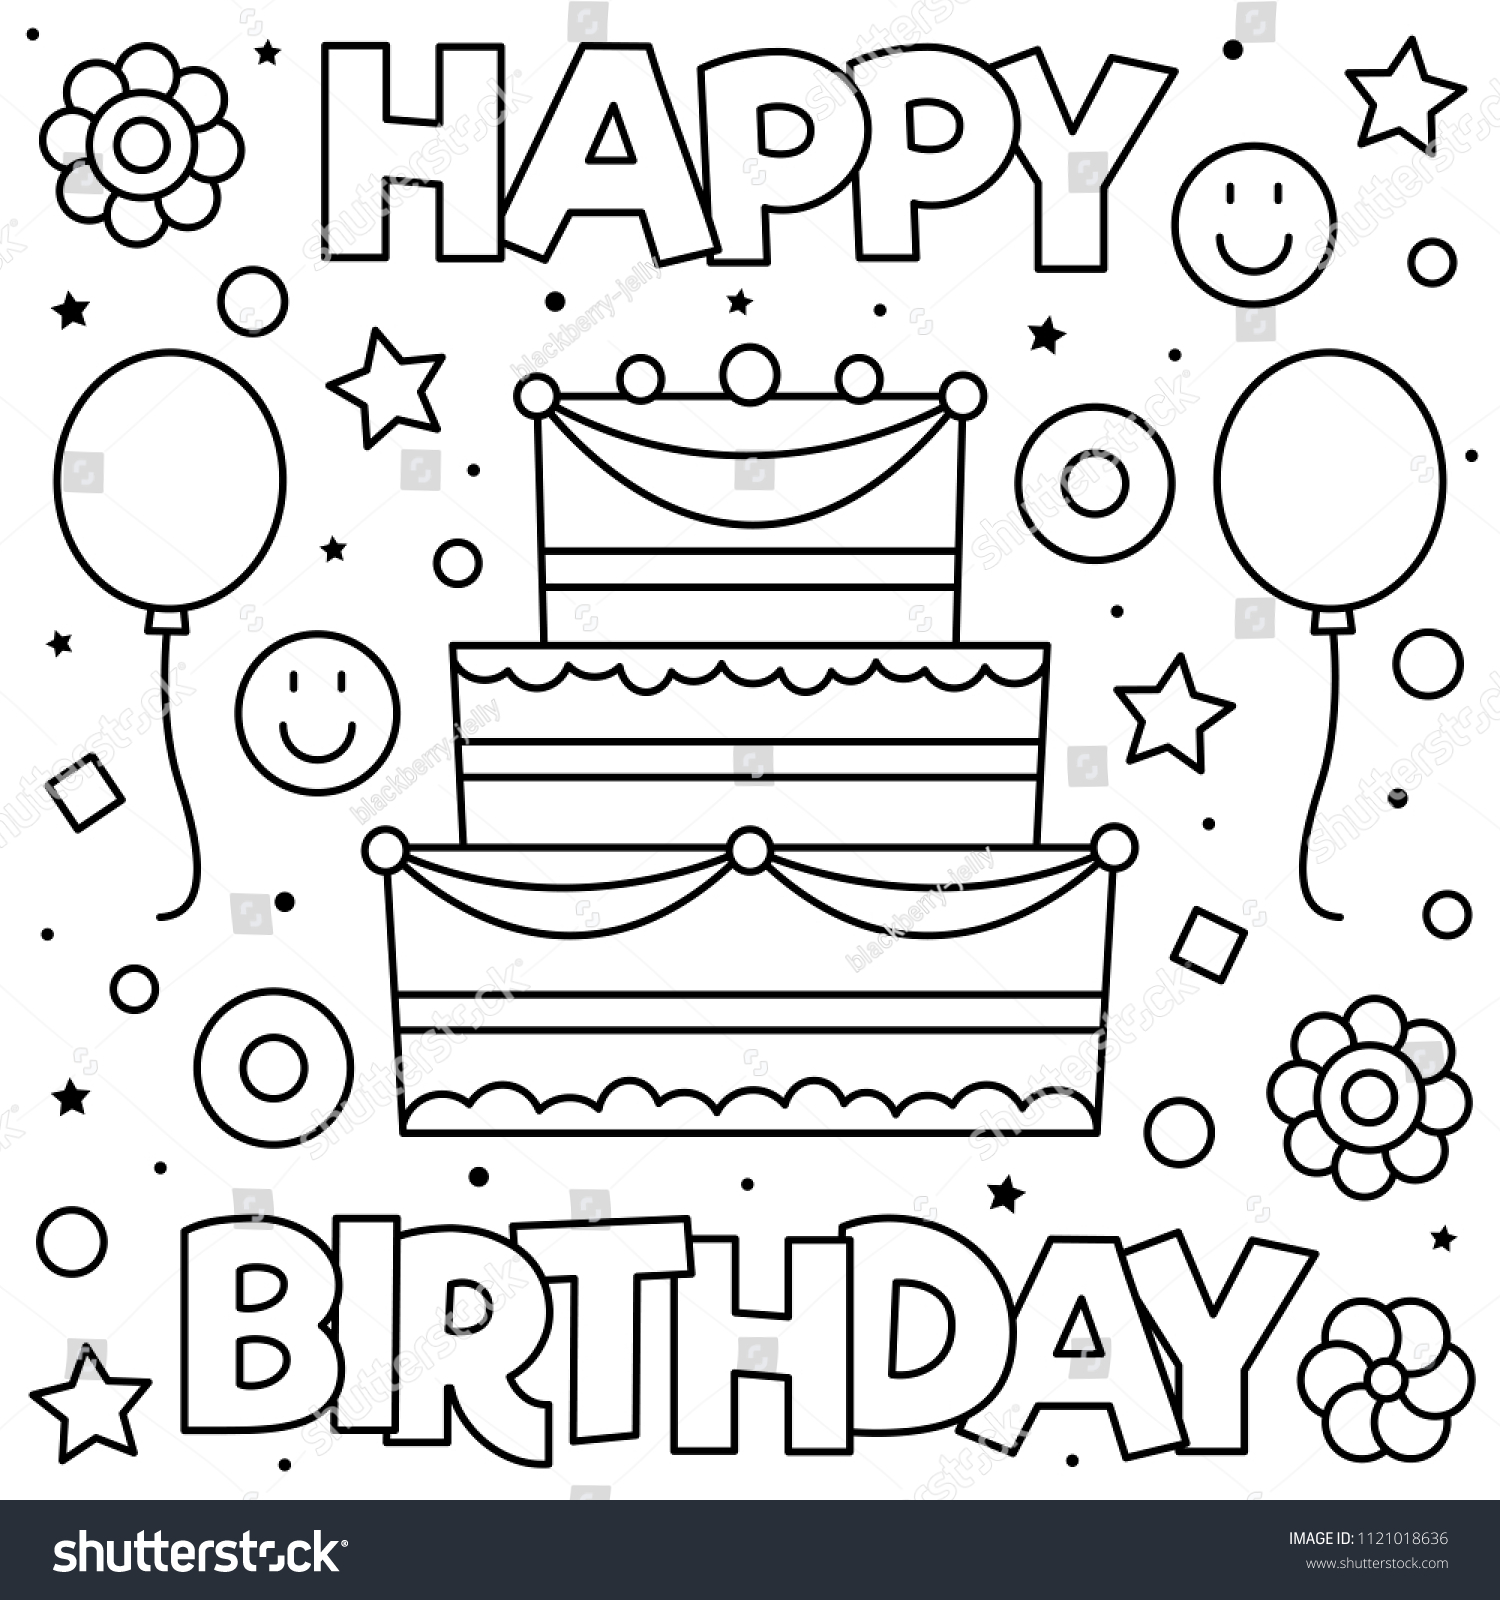 Happy Birthday Coloring Pages To Print Coloring Happy Birthday Coloring Sheet Fantastic Photo Ideas Free